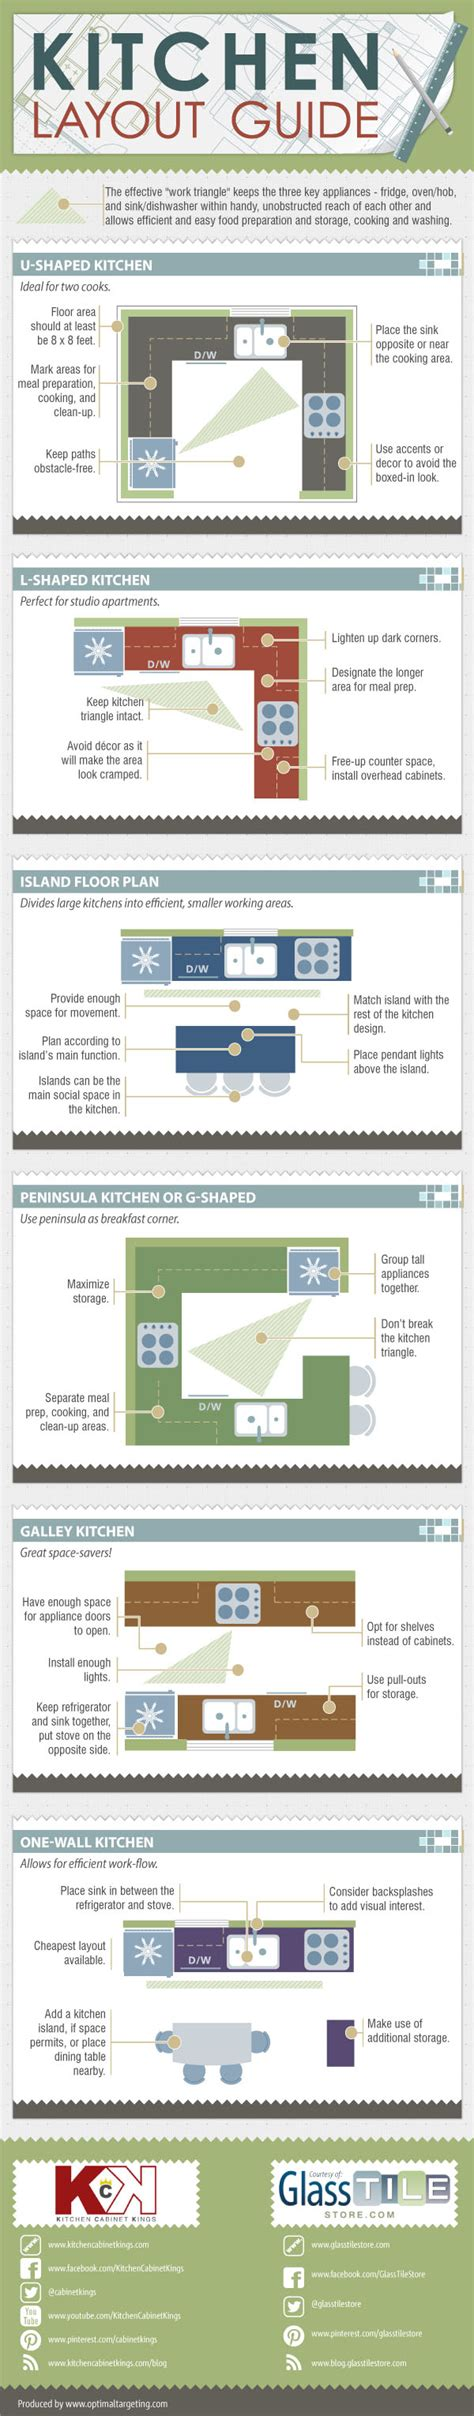 how to choose a kitchen layout based on the fridge oven how to choose a kitchen layout based on the fridge oven